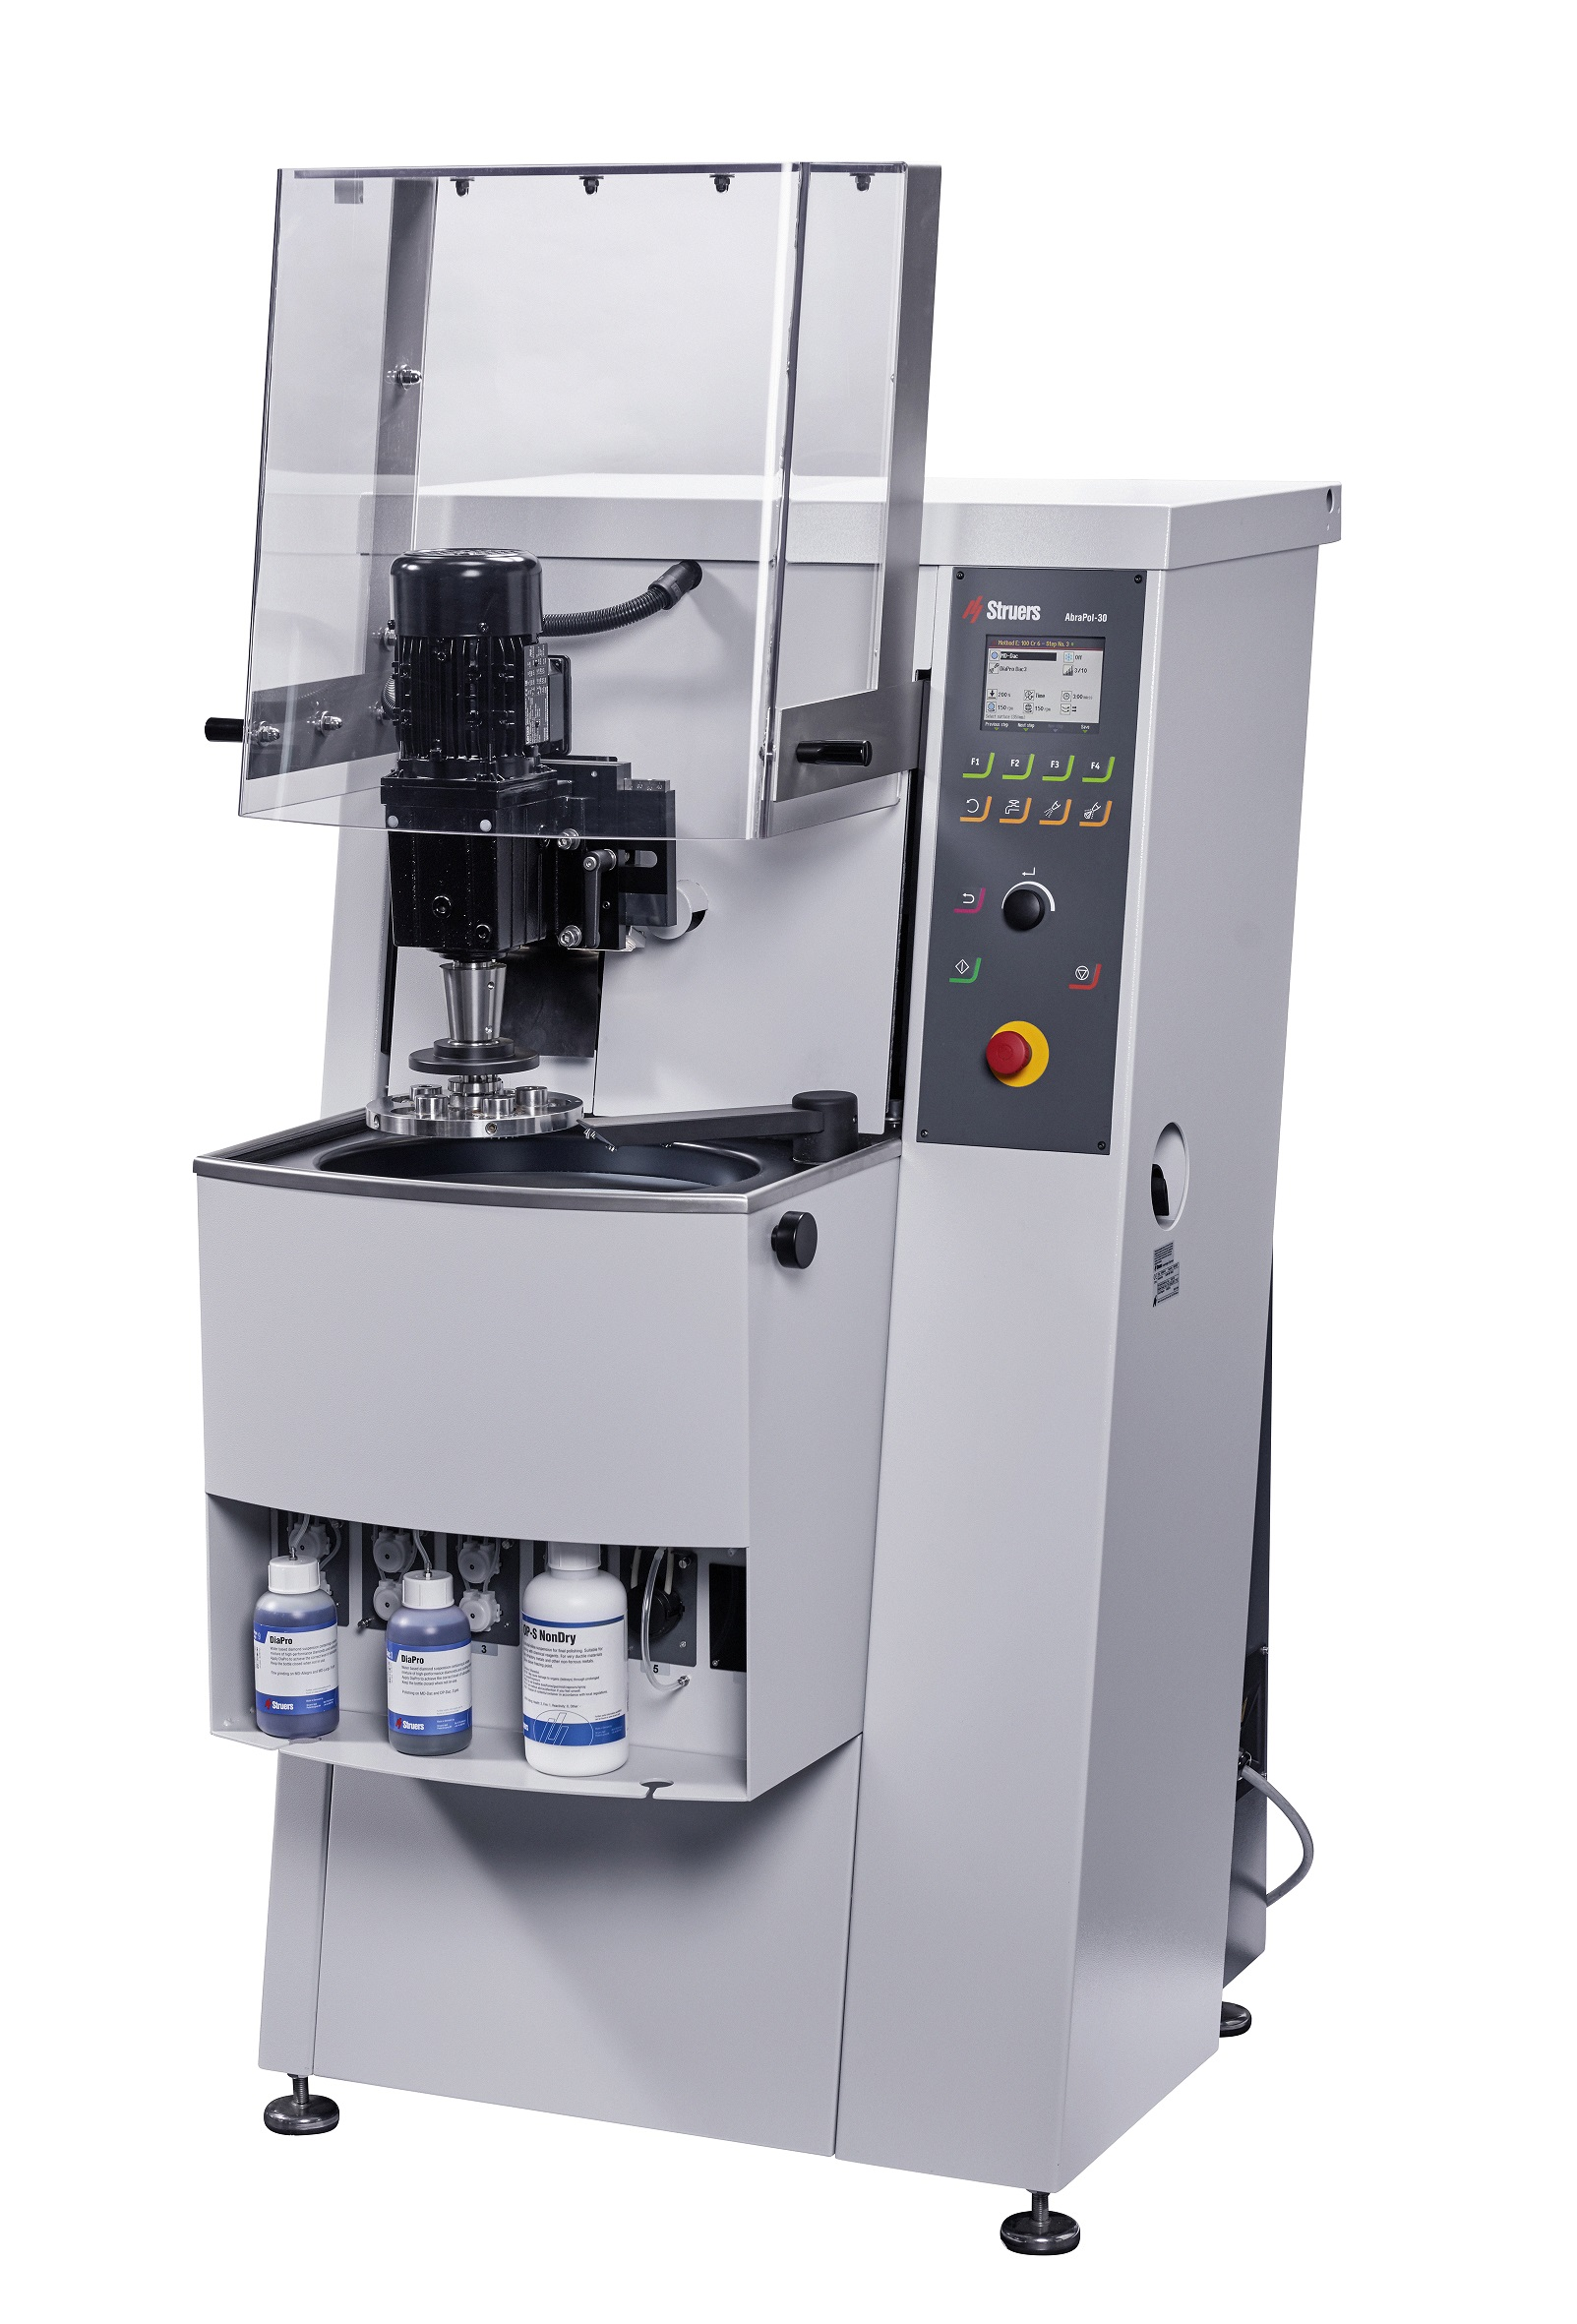 AbraPol-30 High-capacity grinding/polishing machine